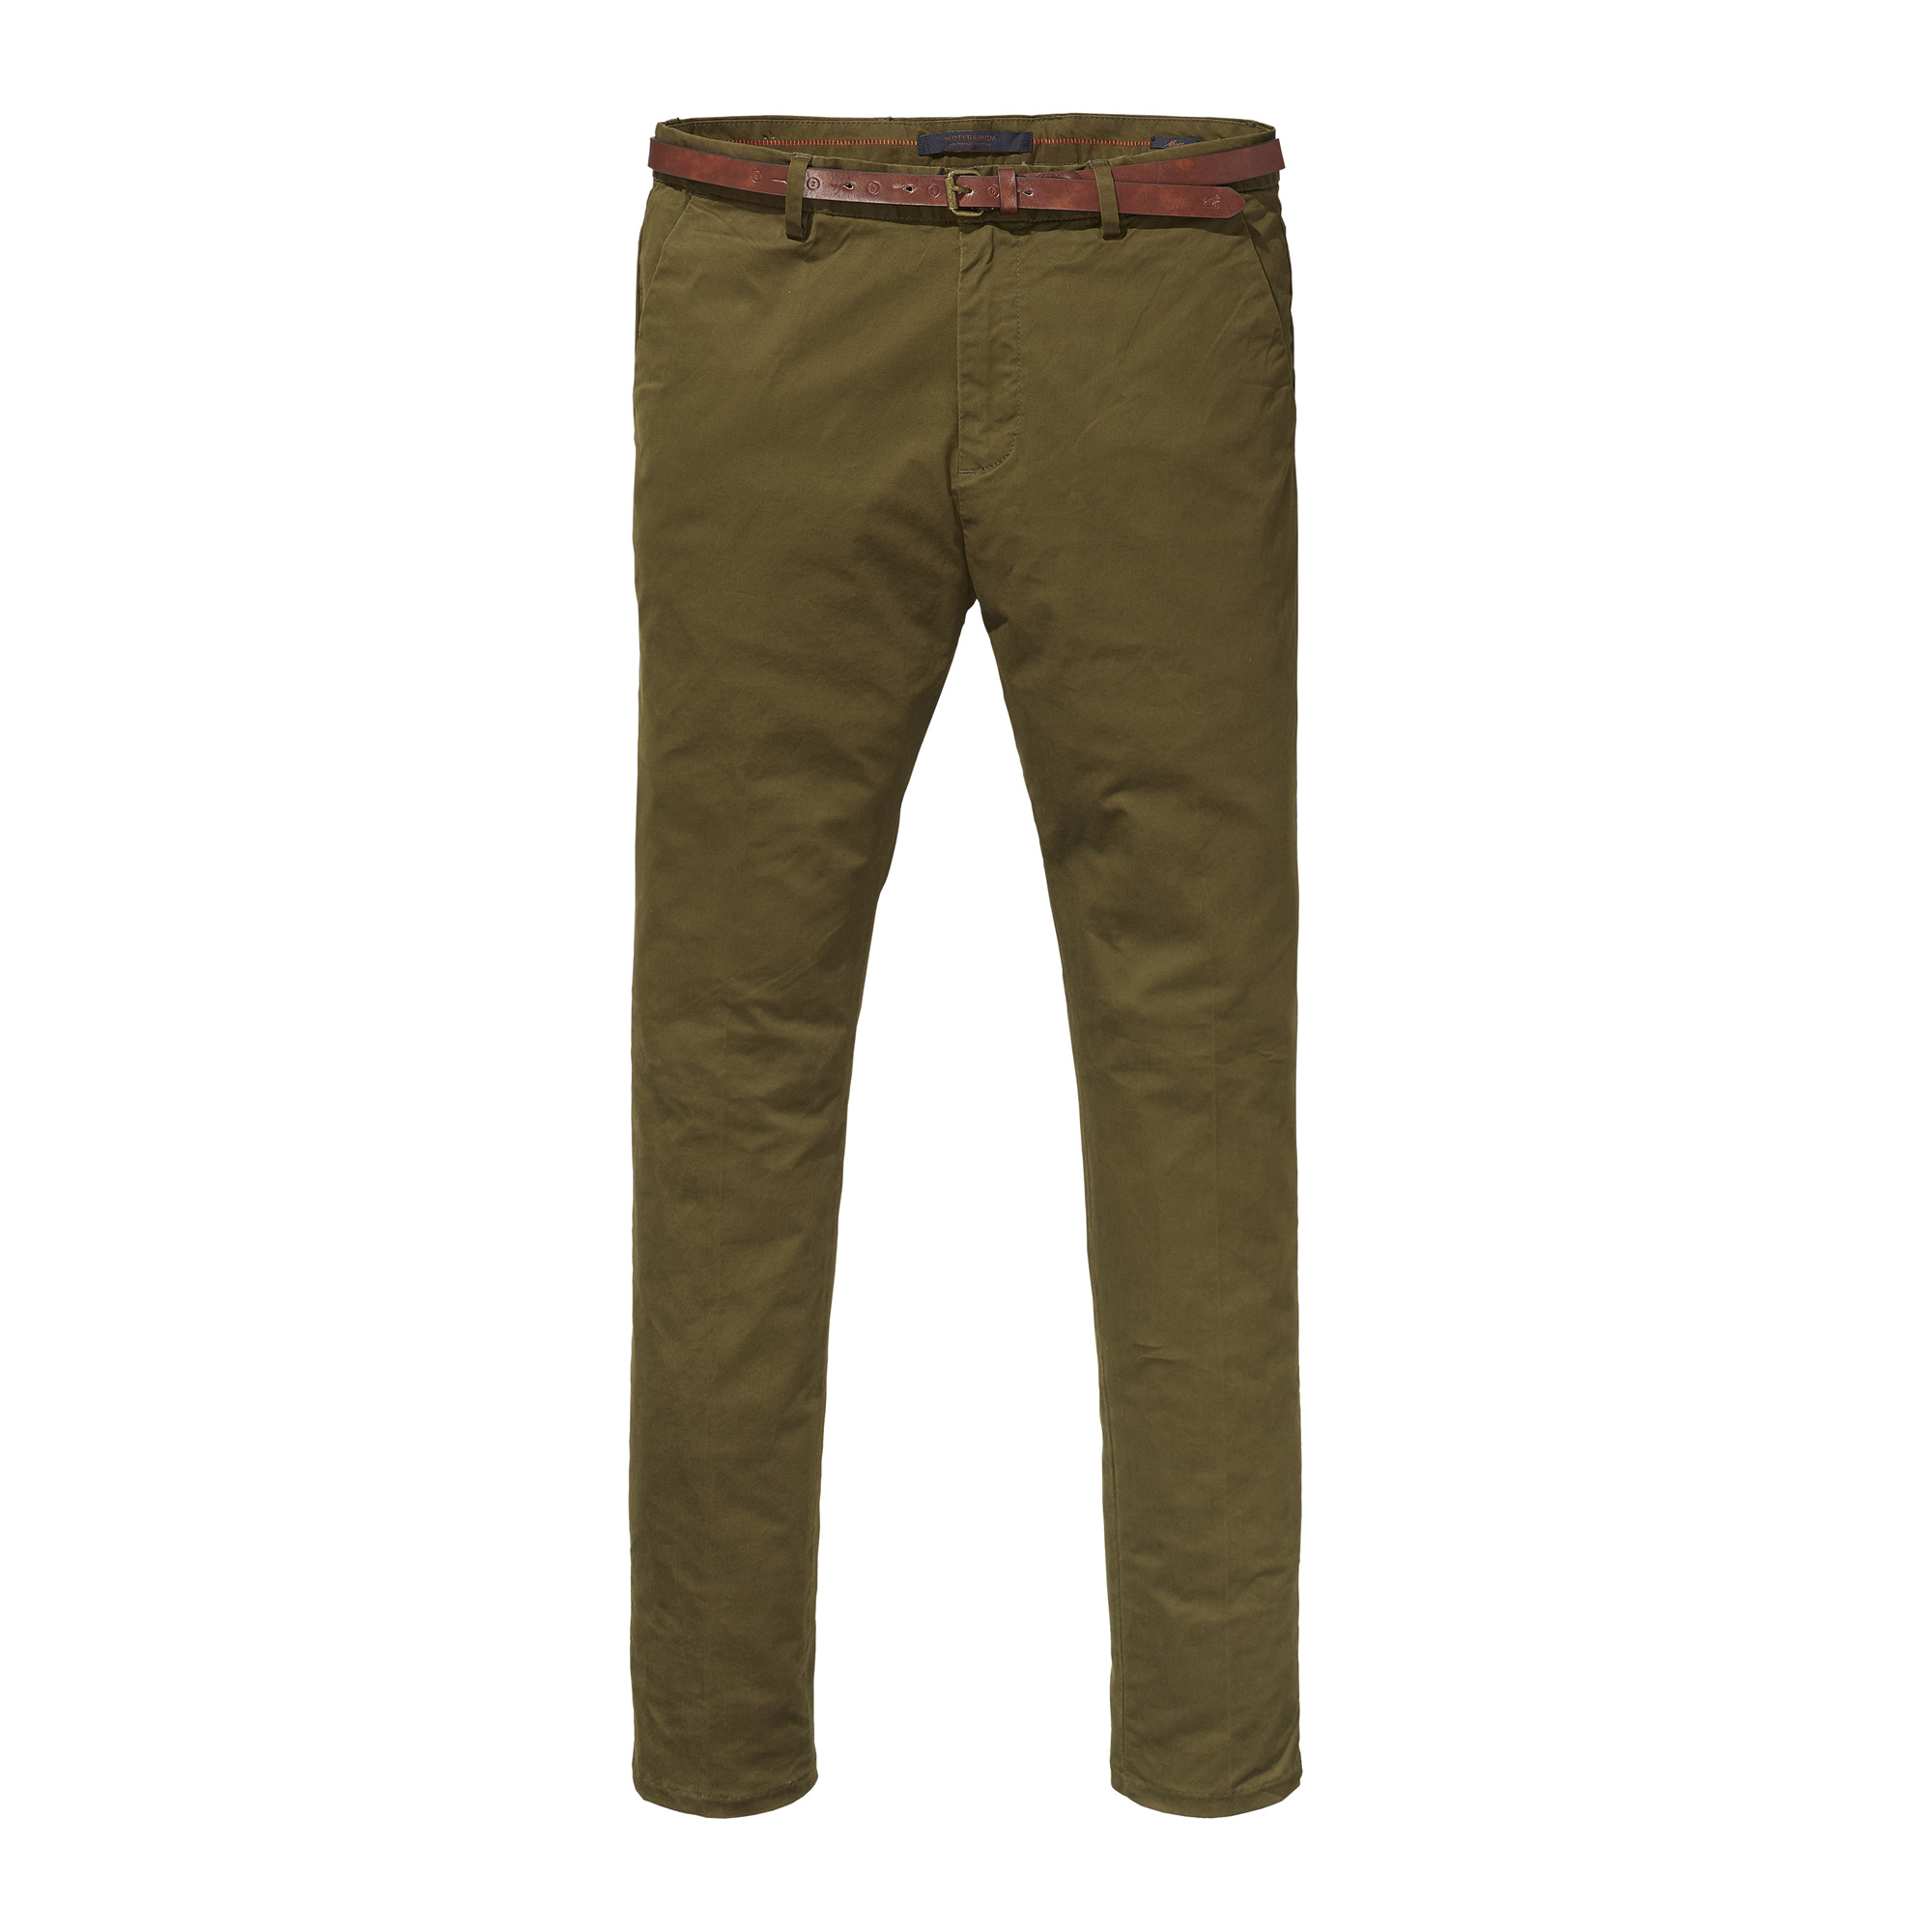 Scotch & Soda Herren Hose Mott - Classic Chino ...